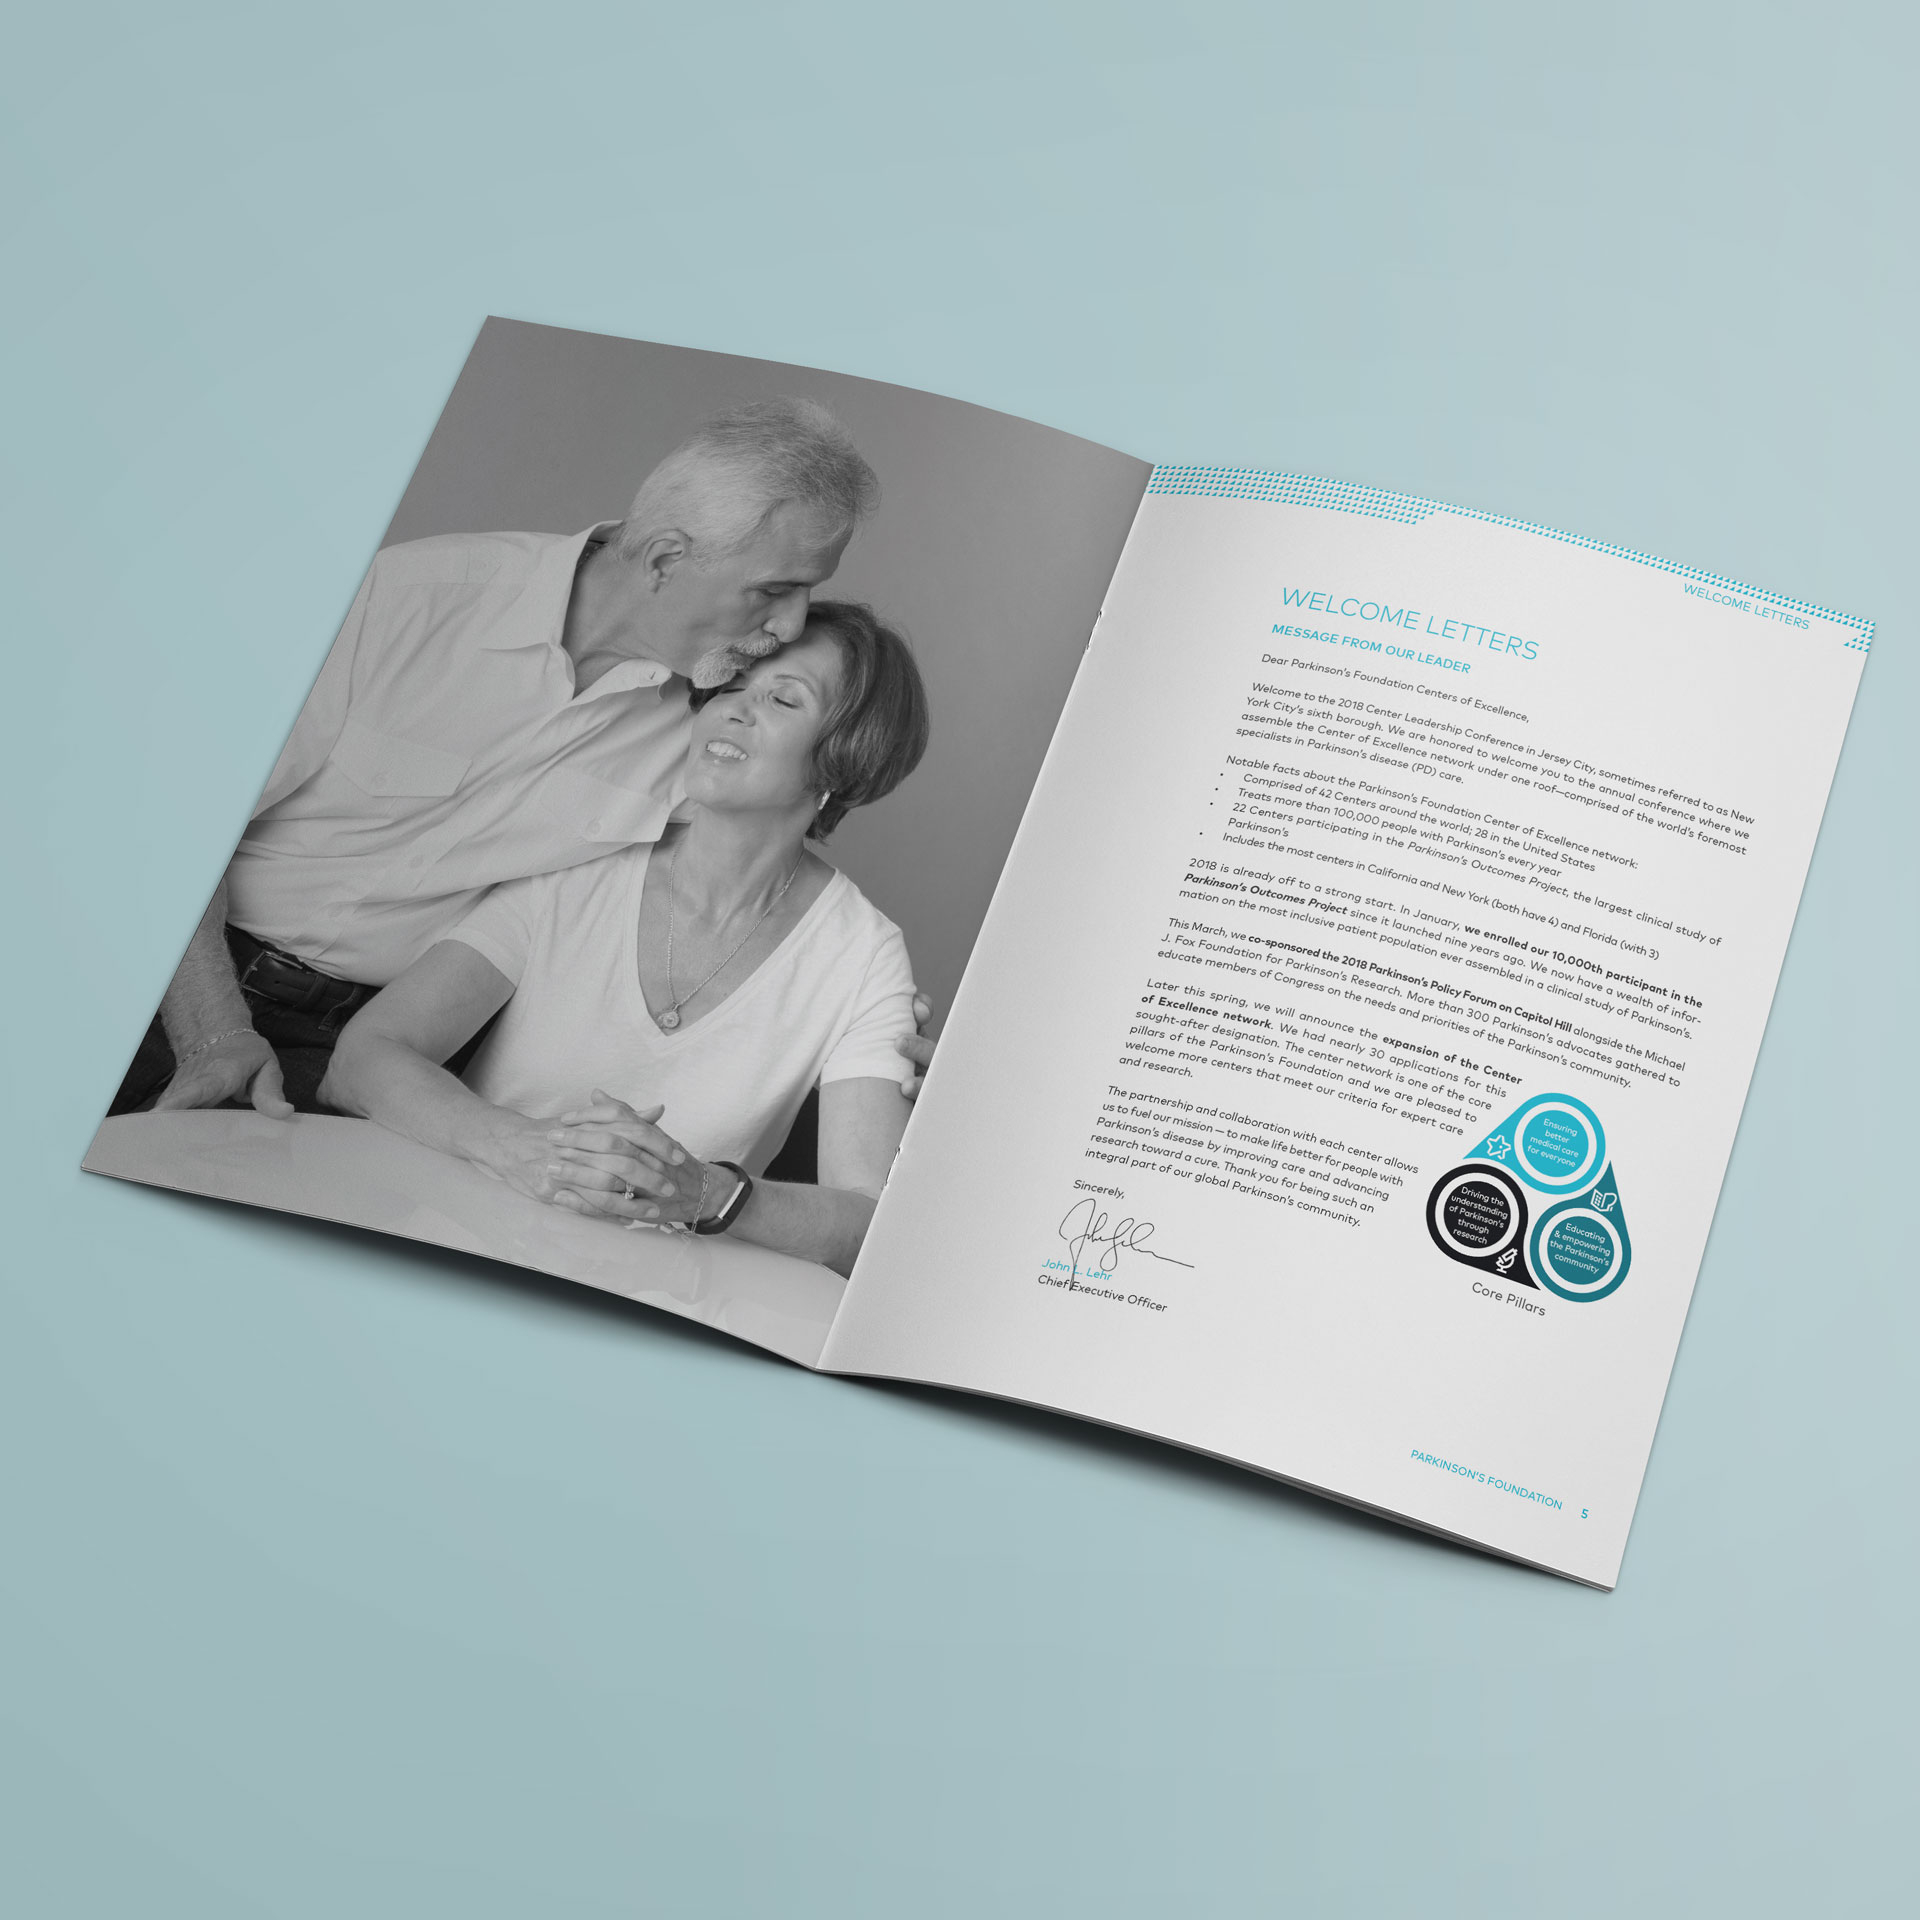 Diseño Editorial Documento Congreso Mundial Centros de Excelencia Parkinson's Foundation